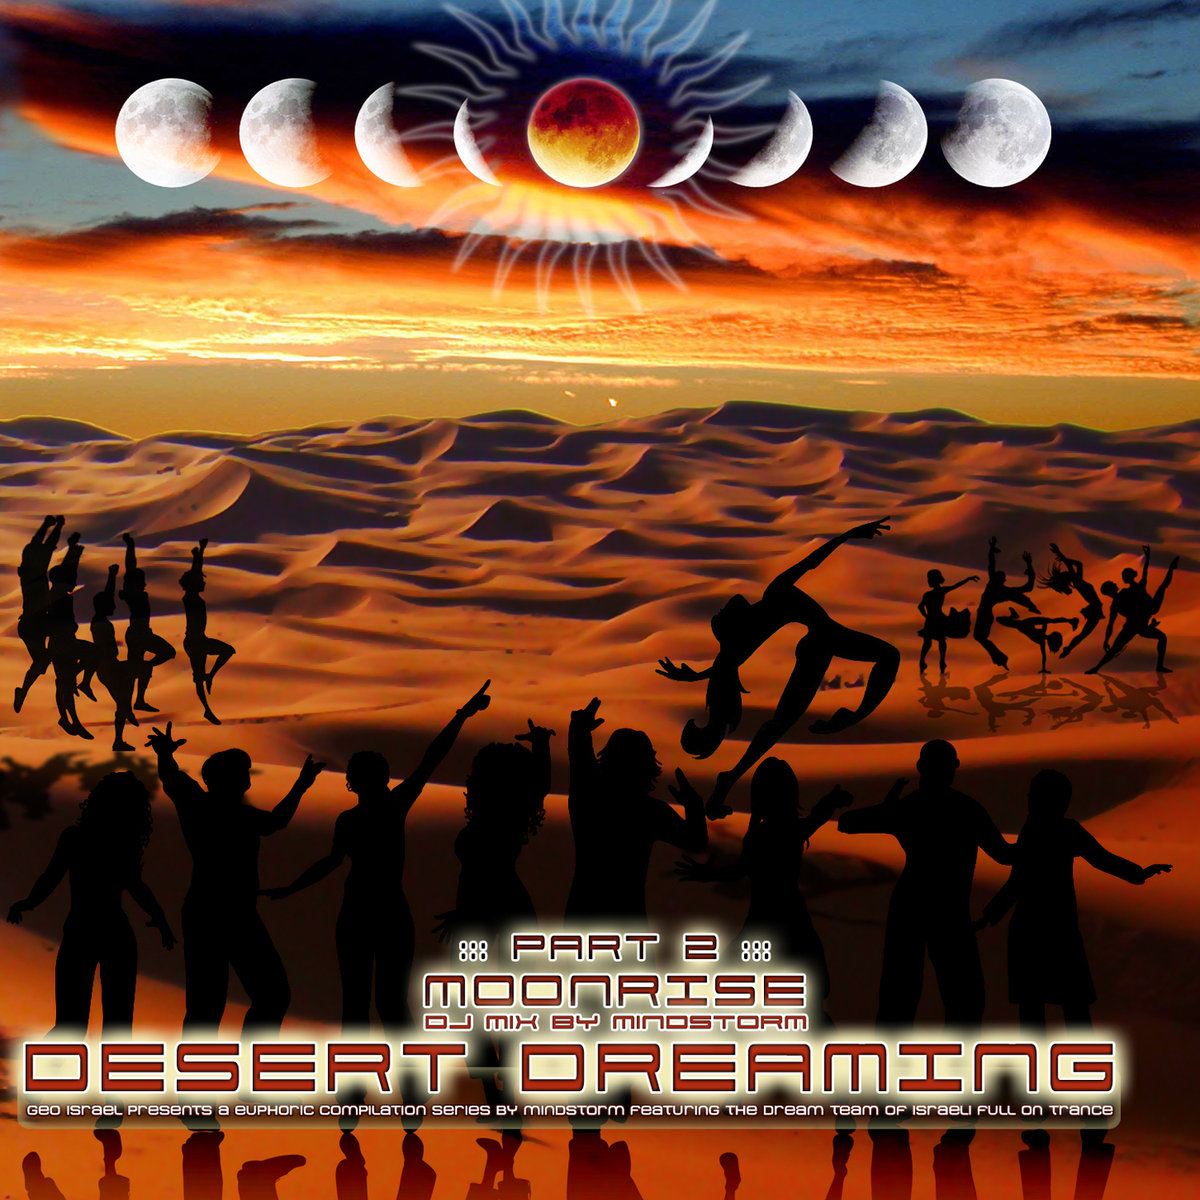 Various Artists - Desert Dreaming Part 2: Moonrise (DJ Mix by Mindstorm) @ 'Various Artists - Desert Dreaming Part 2: Moonrise (DJ Mix by Mindstorm)' album (electronic, goa)